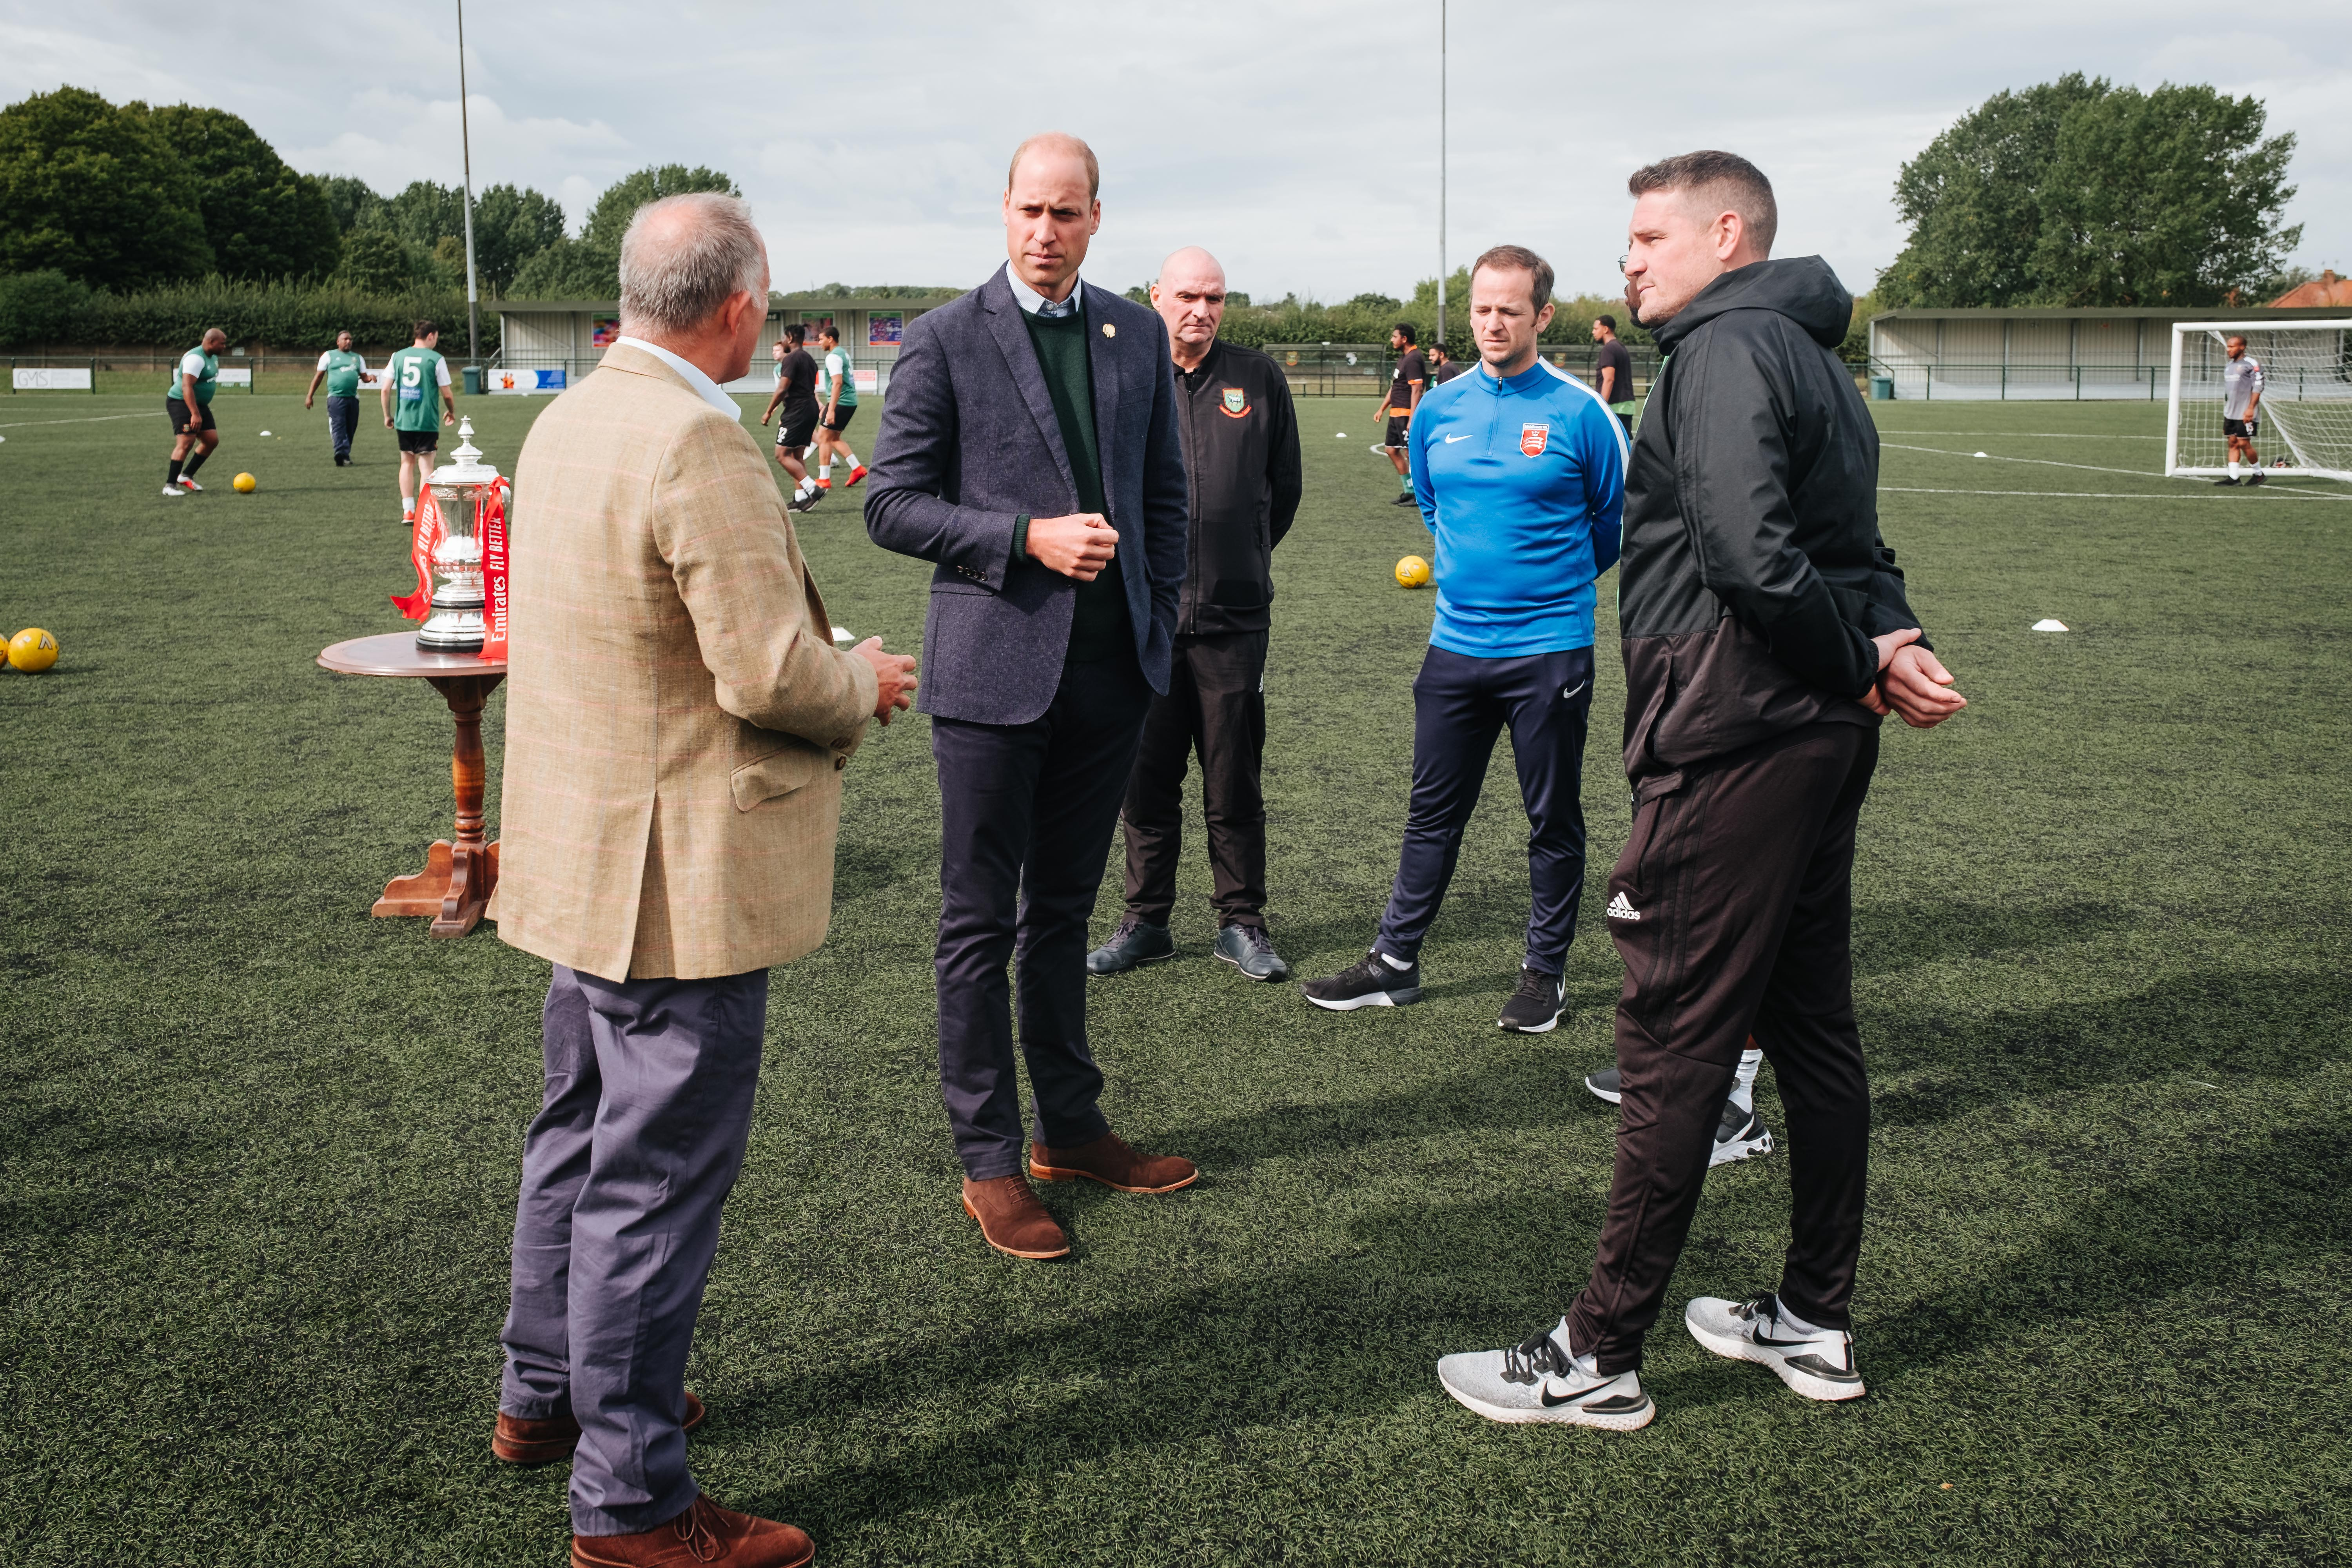 The Duke of Cambridge, President of the FA, visited Hendon FC as part of the Heads Up campaign.